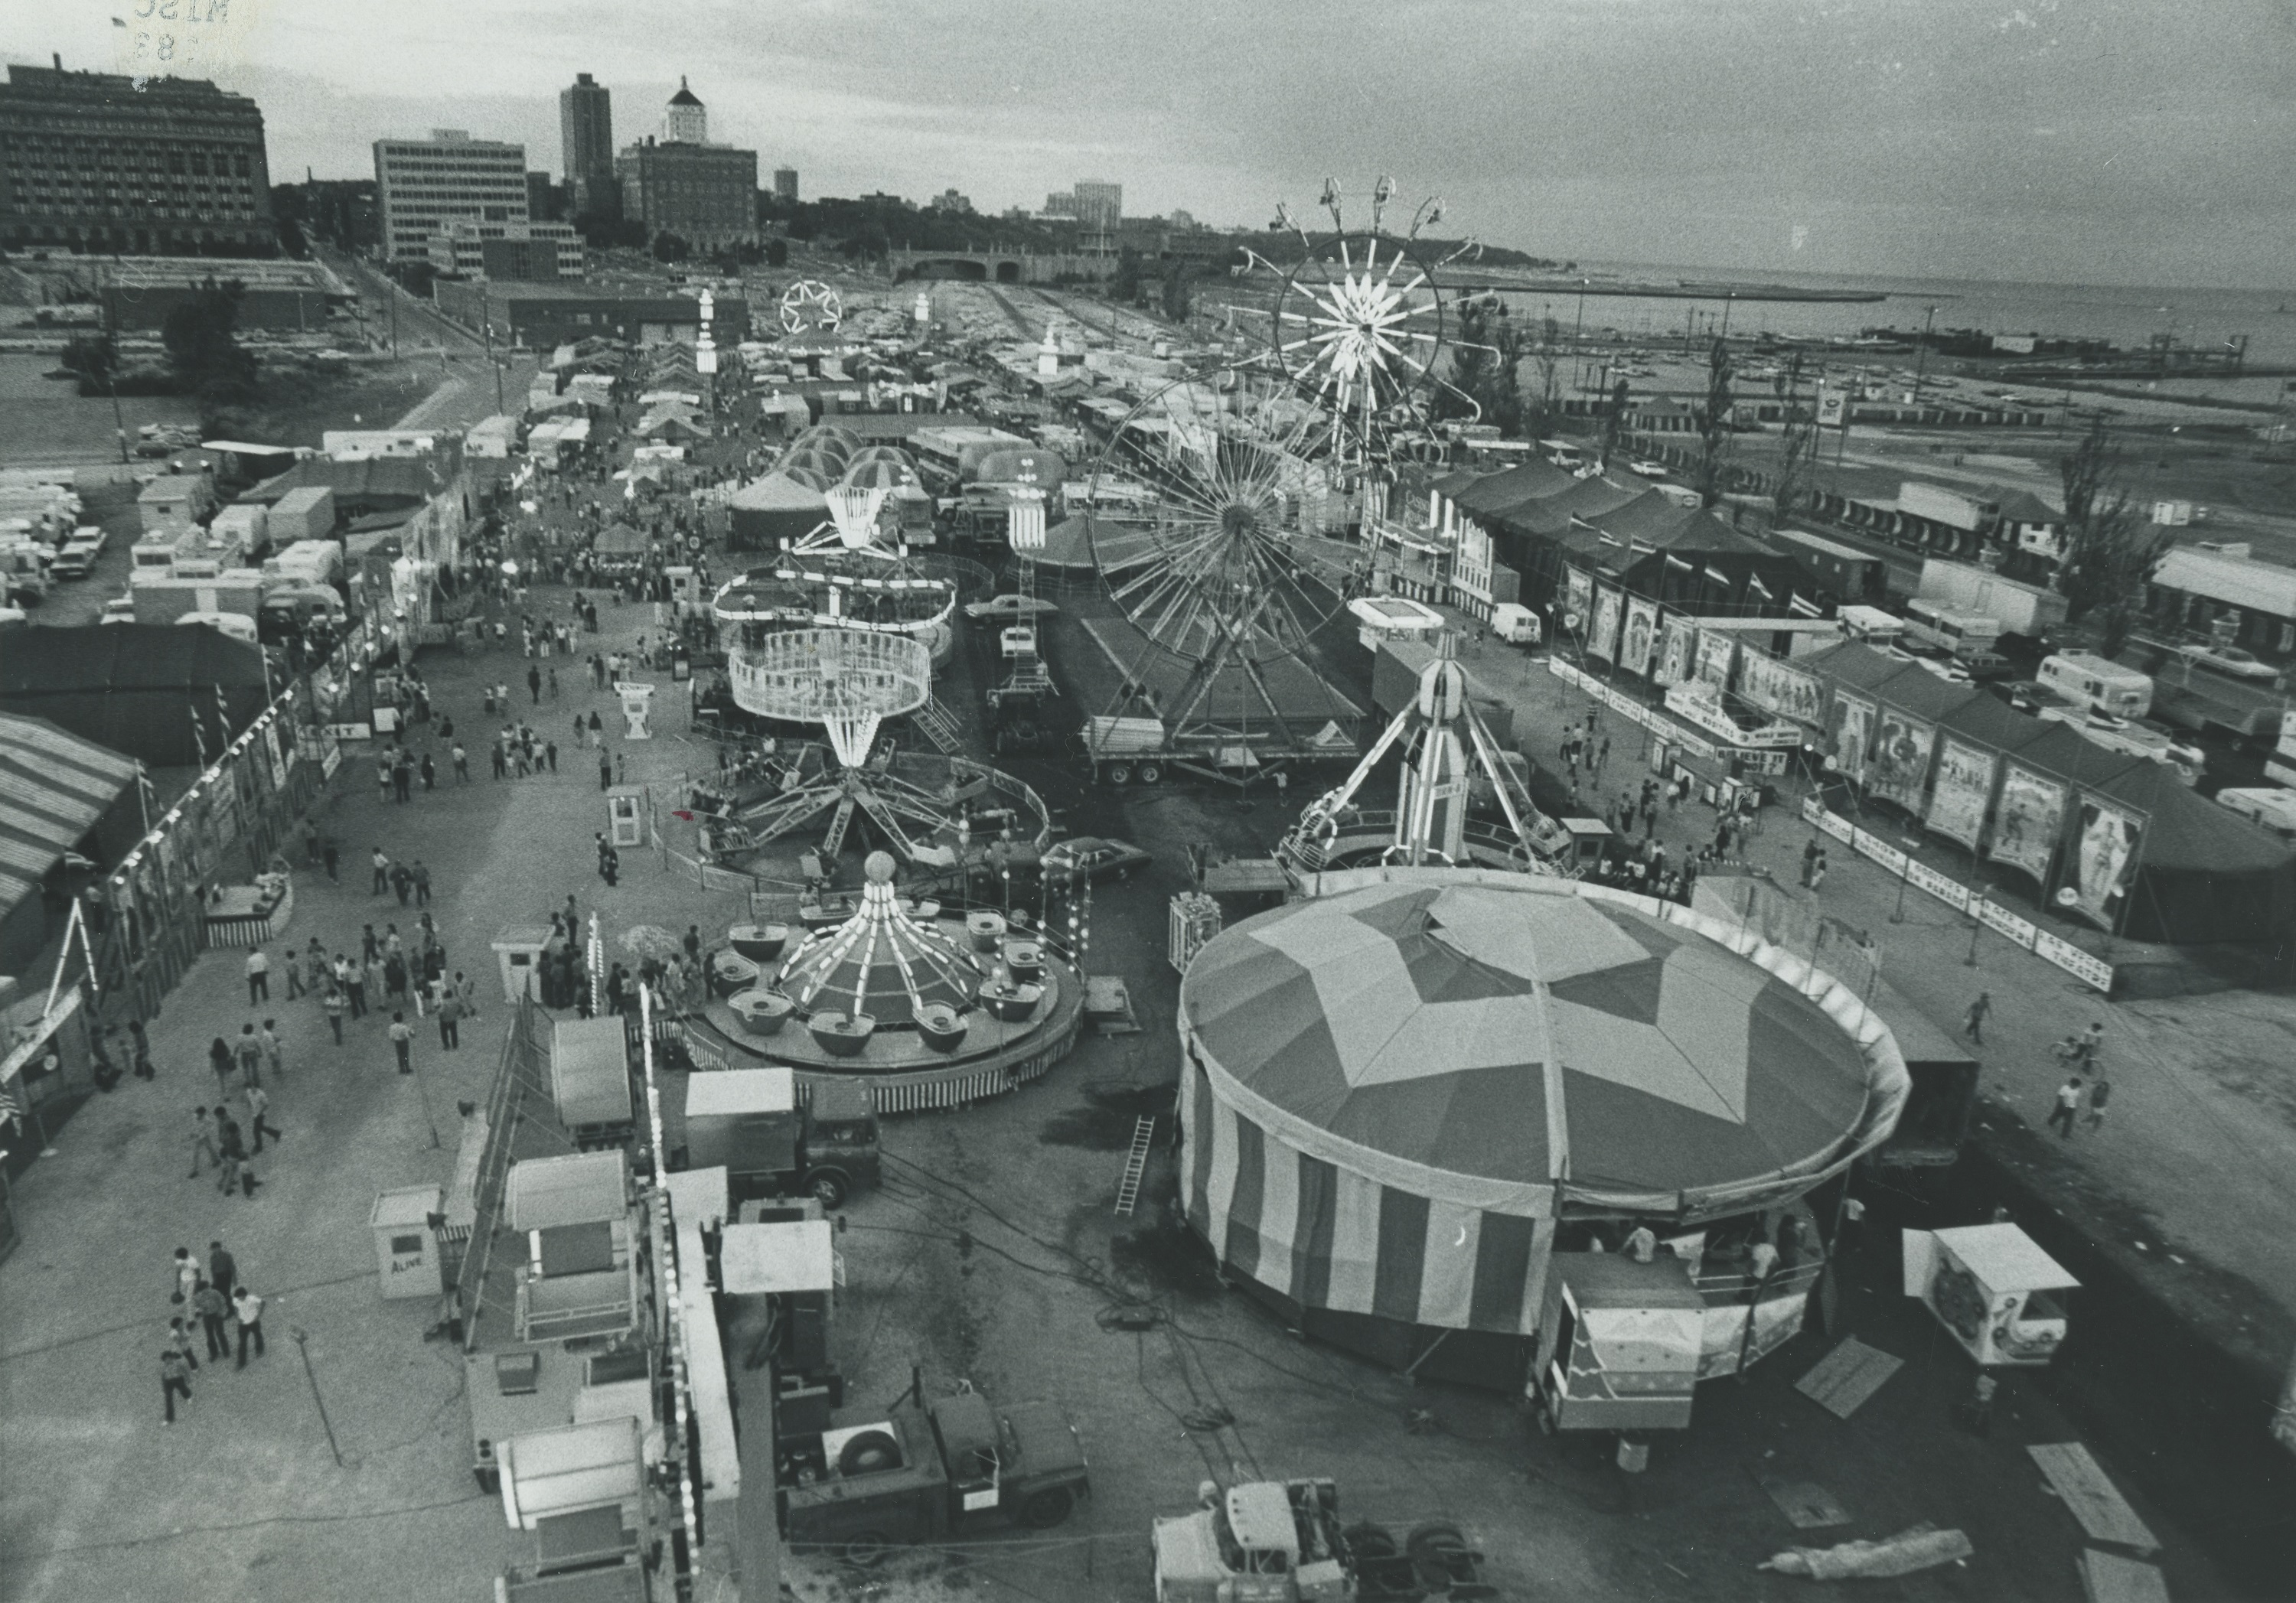 <table class=&quot;lightbox&quot;><tr><td colspan=2 class=&quot;lightbox-title&quot;>Midway at Summerfest</td></tr><tr><td colspan=2 class=&quot;lightbox-caption&quot;>This elevated photograph provides a view over Summerfest in 1971, the fourth anniversary of Milwaukee's biggest festival. </td></tr><tr><td colspan=2 class=&quot;lightbox-spacer&quot;></td></tr><tr class=&quot;lightbox-detail&quot;><td class=&quot;cell-title&quot;>Source: </td><td class=&quot;cell-value&quot;>From the Historic Photo Collection of the Milwaukee Public Library. Courtesy of the Milwaukee Journal Sentinel. Reprinted with permission.<br /><a href=&quot;http://content.mpl.org/cdm/singleitem/collection/HstoricPho/id/5977/rec/5&quot; target=&quot;_blank&quot;>Milwaukee Public Library</a></td></tr><tr class=&quot;filler-row&quot;><td colspan=2>&nbsp;</td></tr></table>